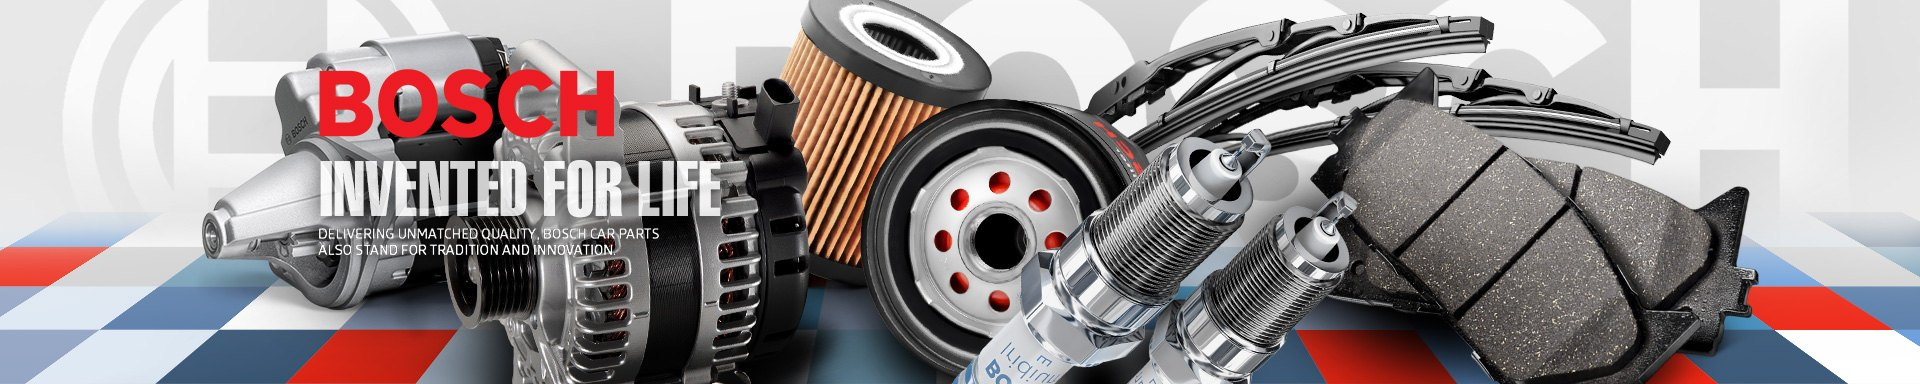 Bosch Automotive Parts Page